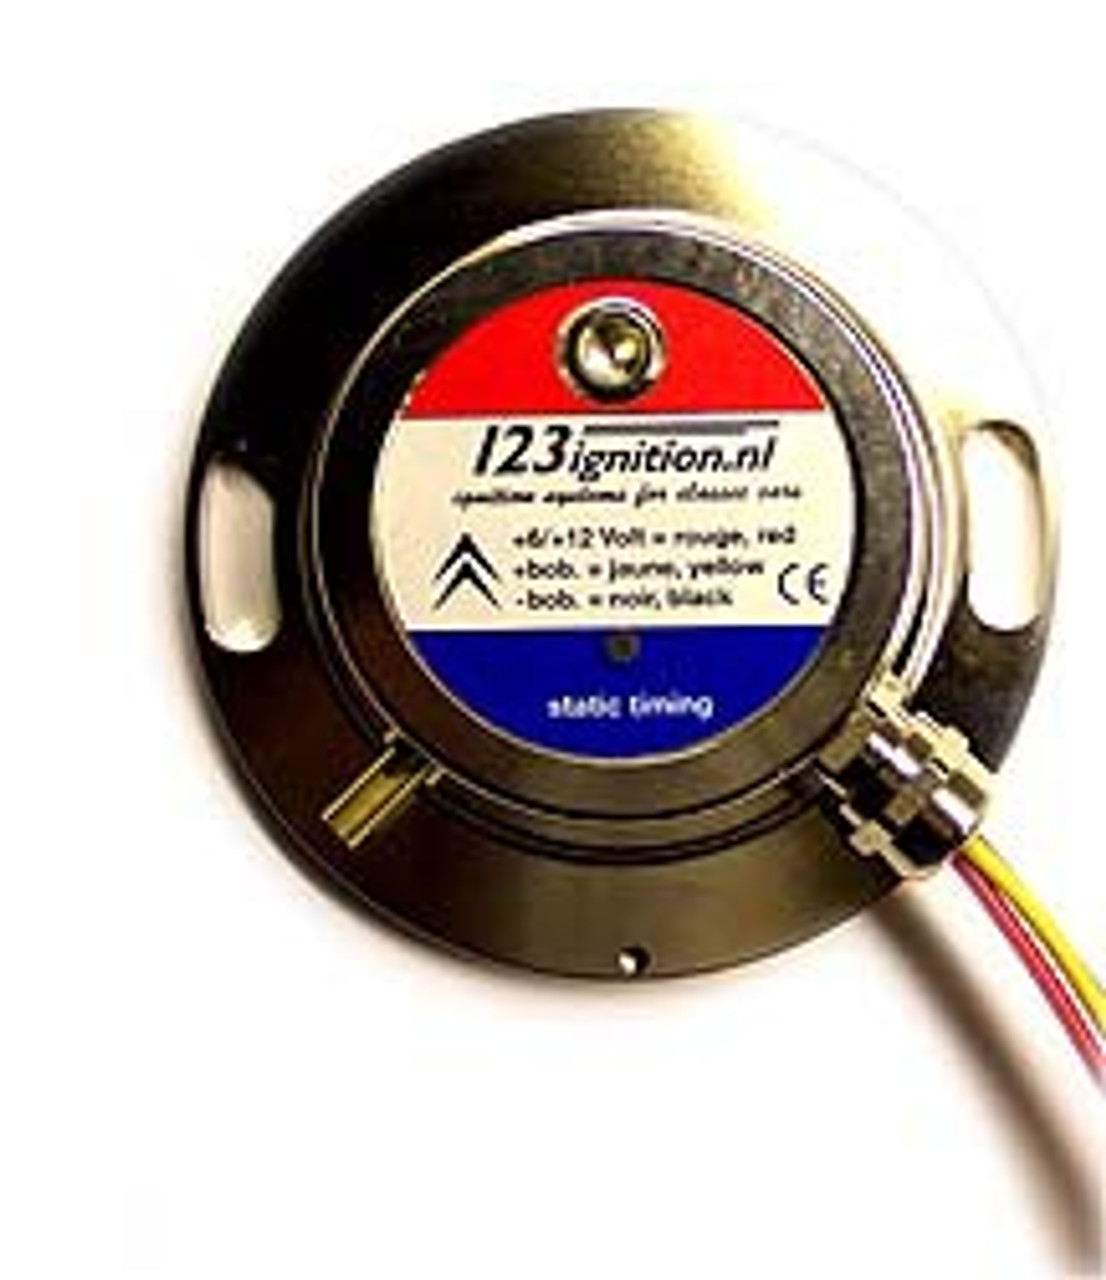 for 2CV4, 2CV6, DYANE, AMI, Mehari The 123\EVO is designed to work in conjunction with the stock ( black! ) coil, OR the ( brown ) VISA-coil.   It detects automatically which coil is connected and adjusts the dwell-timing accordingly.